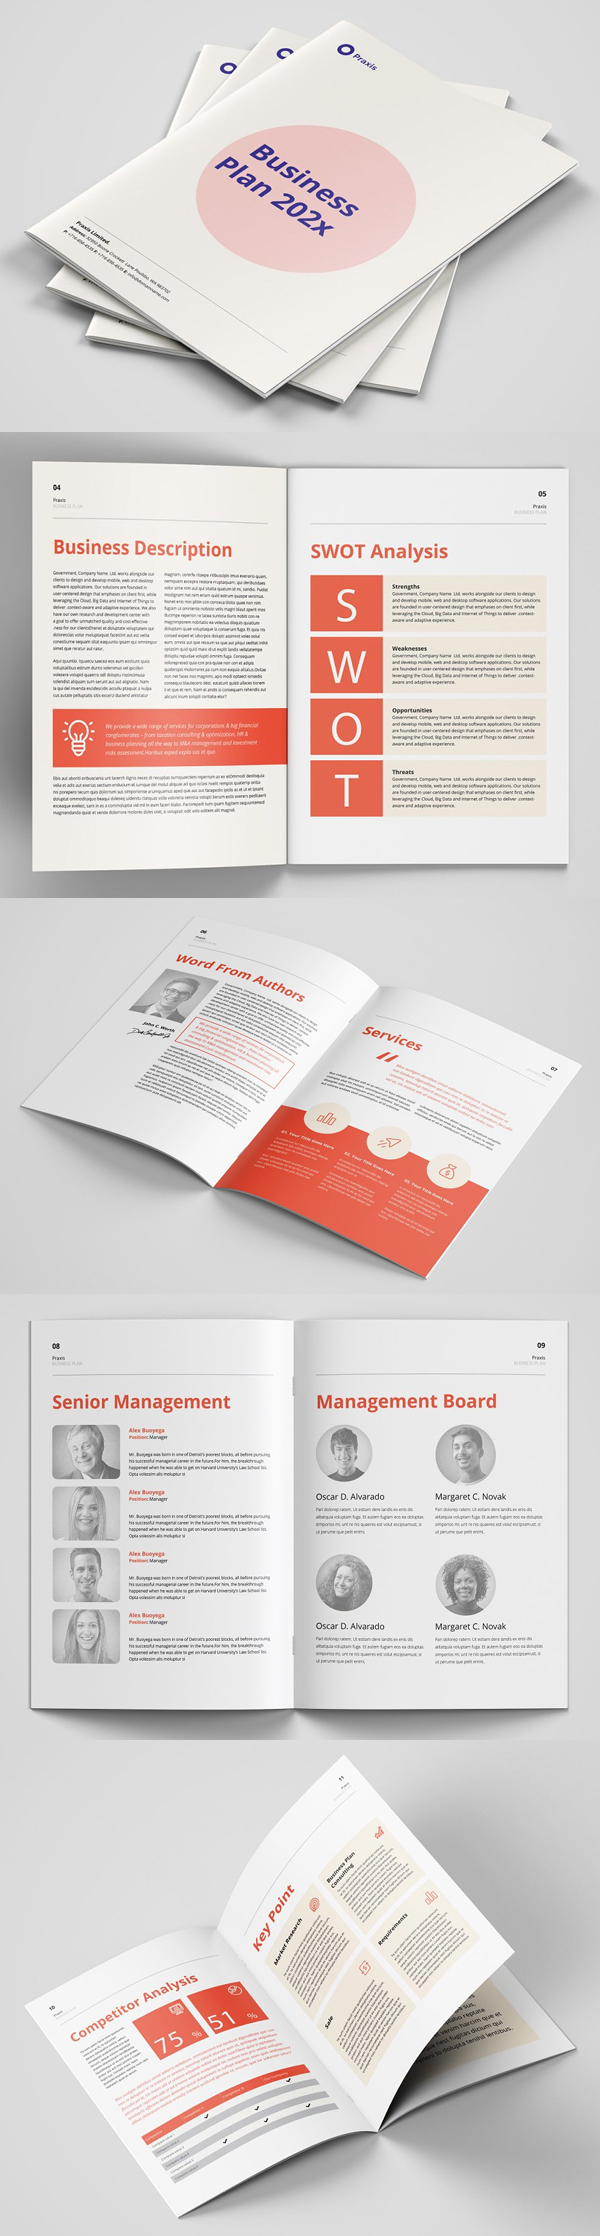 Business Plan Guild Brochure Design